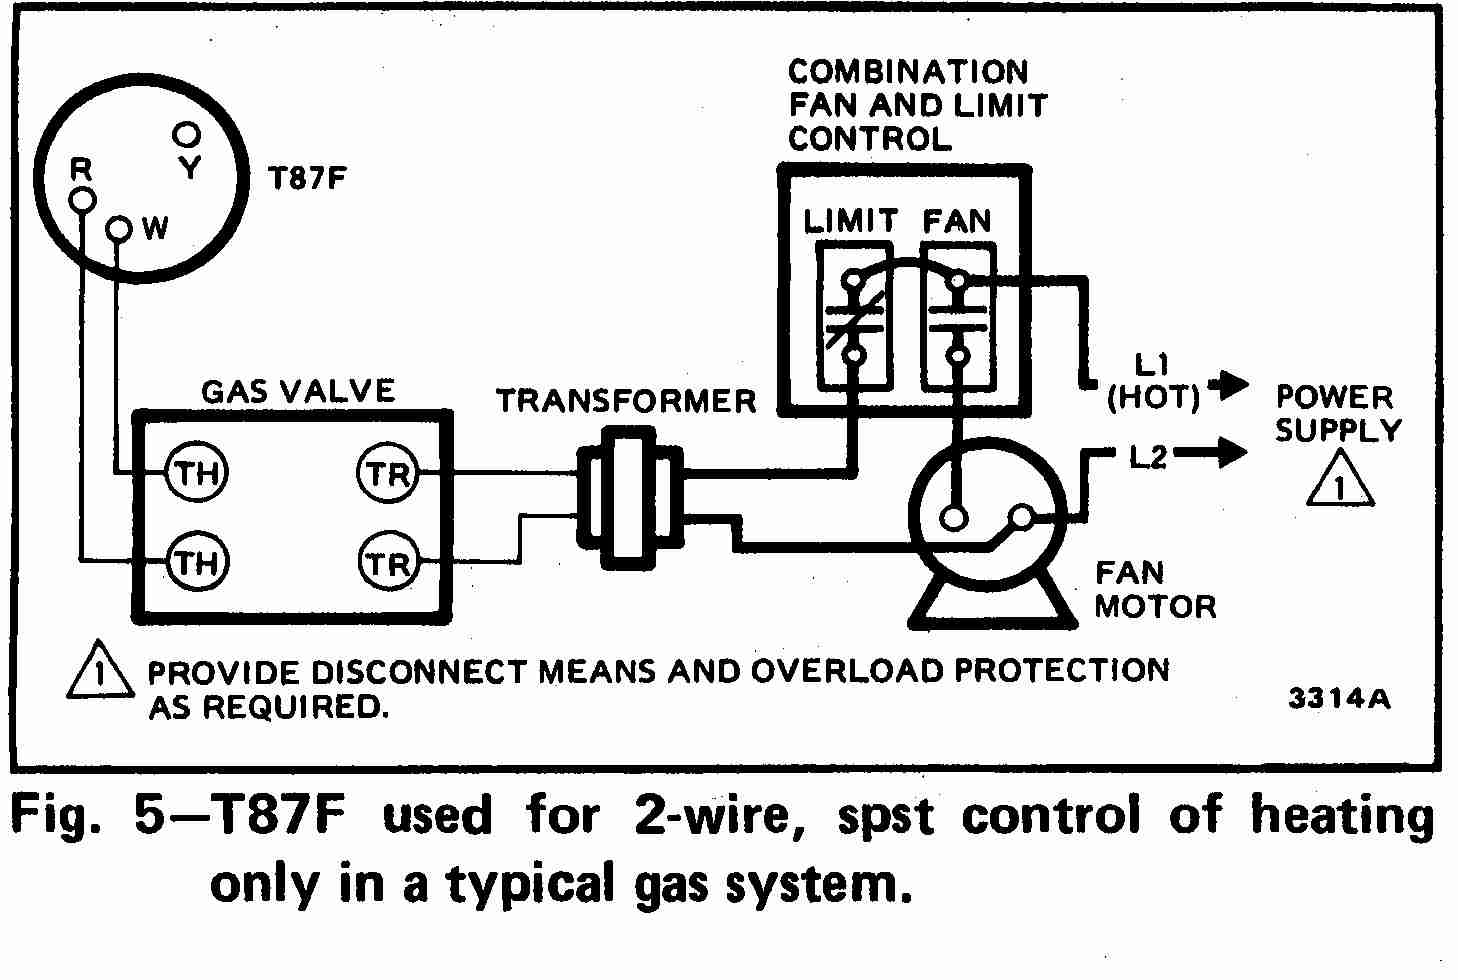 TT_T87F_0002_2Wg_DJF room thermostat wiring diagrams for hvac systems wall heater wiring diagram at creativeand.co